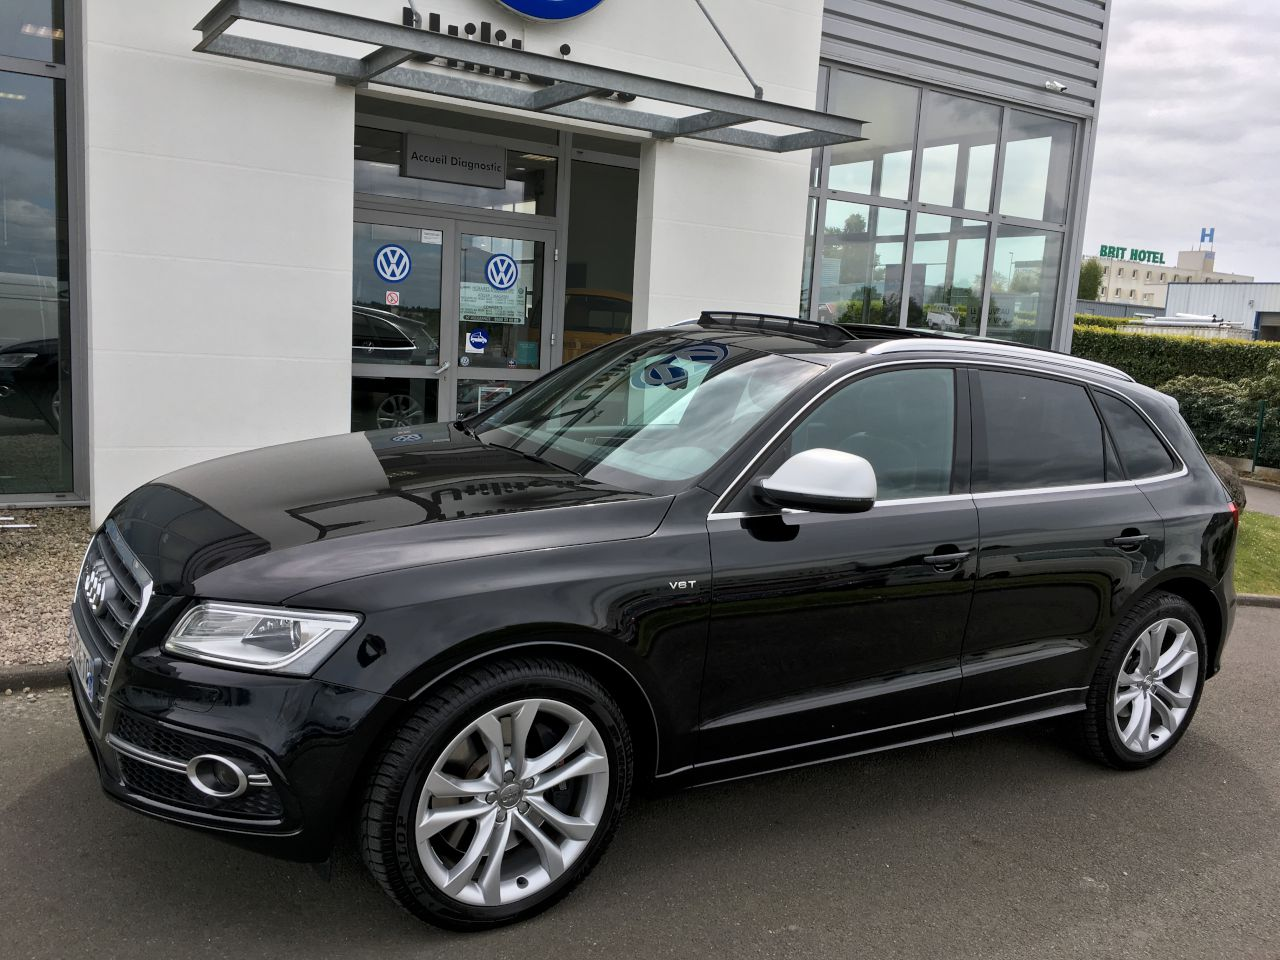 audi sq5 v6 3 0 tdi 313 avus quattro groupe aubr e garages. Black Bedroom Furniture Sets. Home Design Ideas